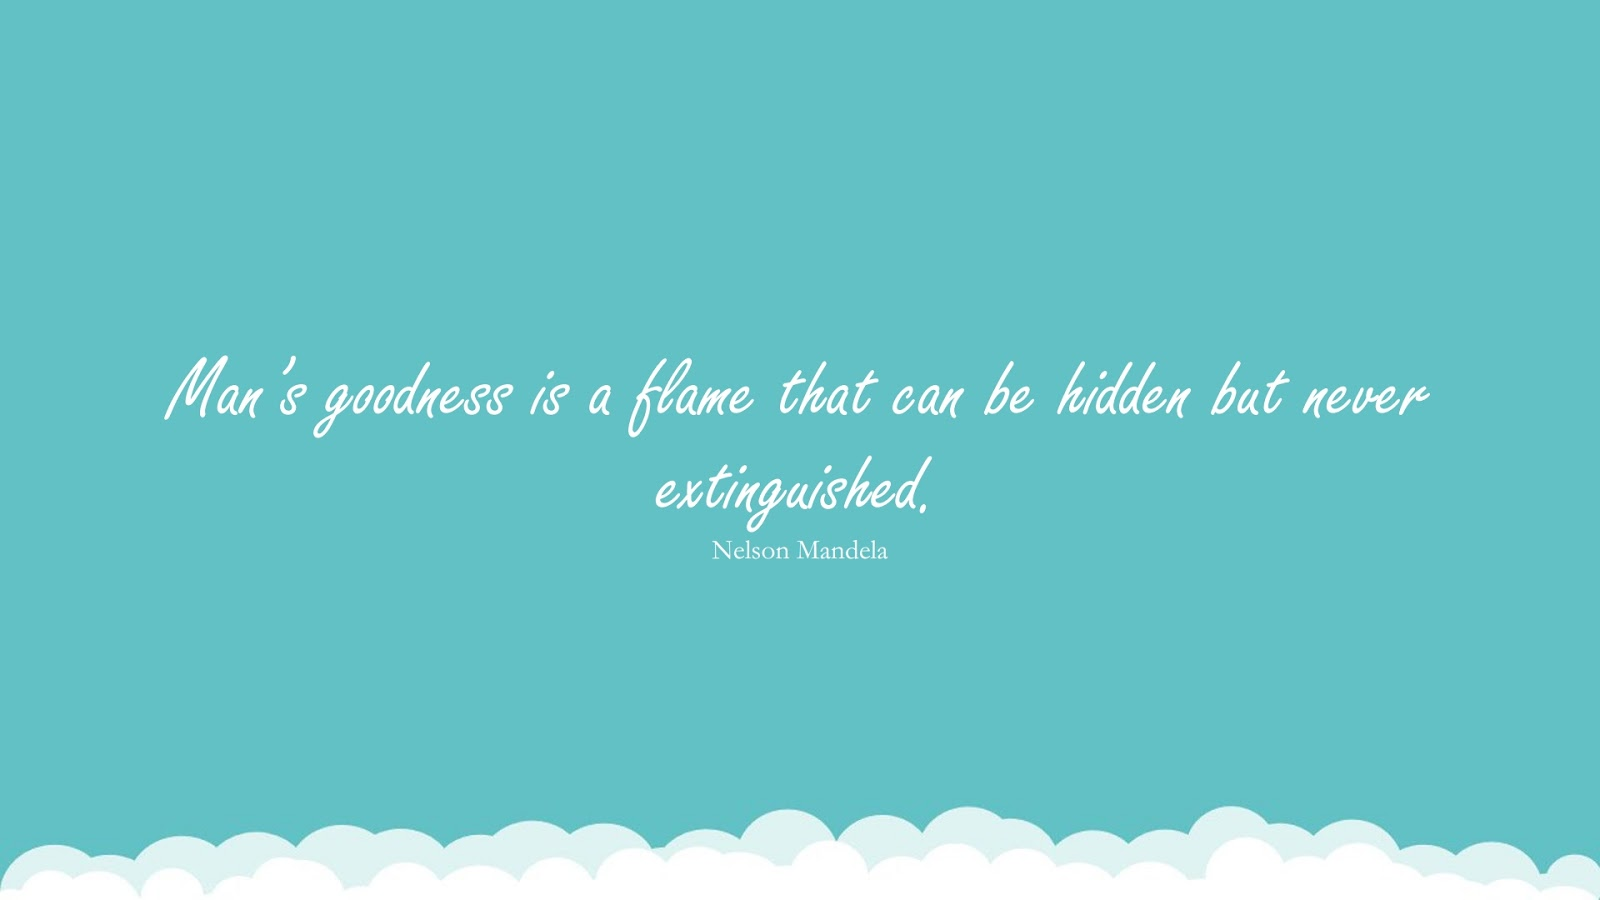 Man's goodness is a flame that can be hidden but never extinguished. (Nelson Mandela);  #HumanityQuotes